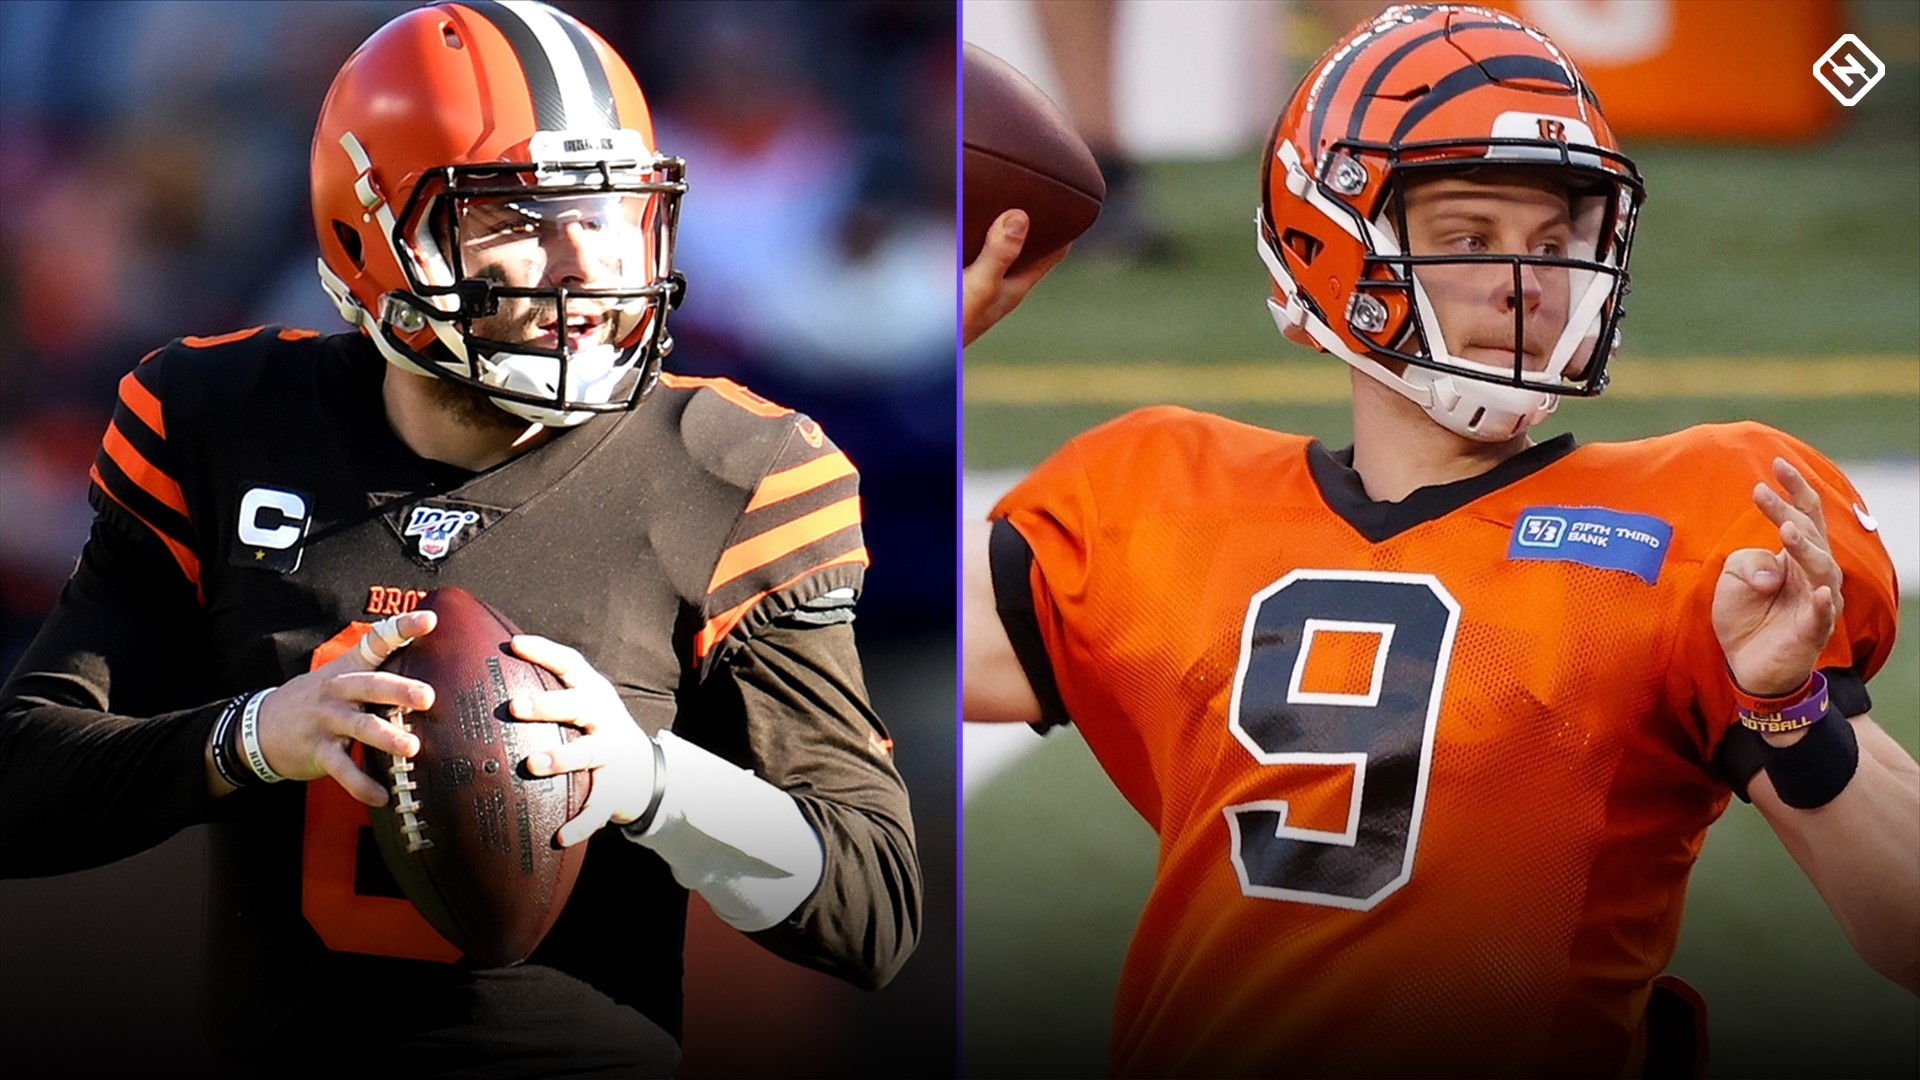 Bengals browns betting preview goal baby weight betting pools